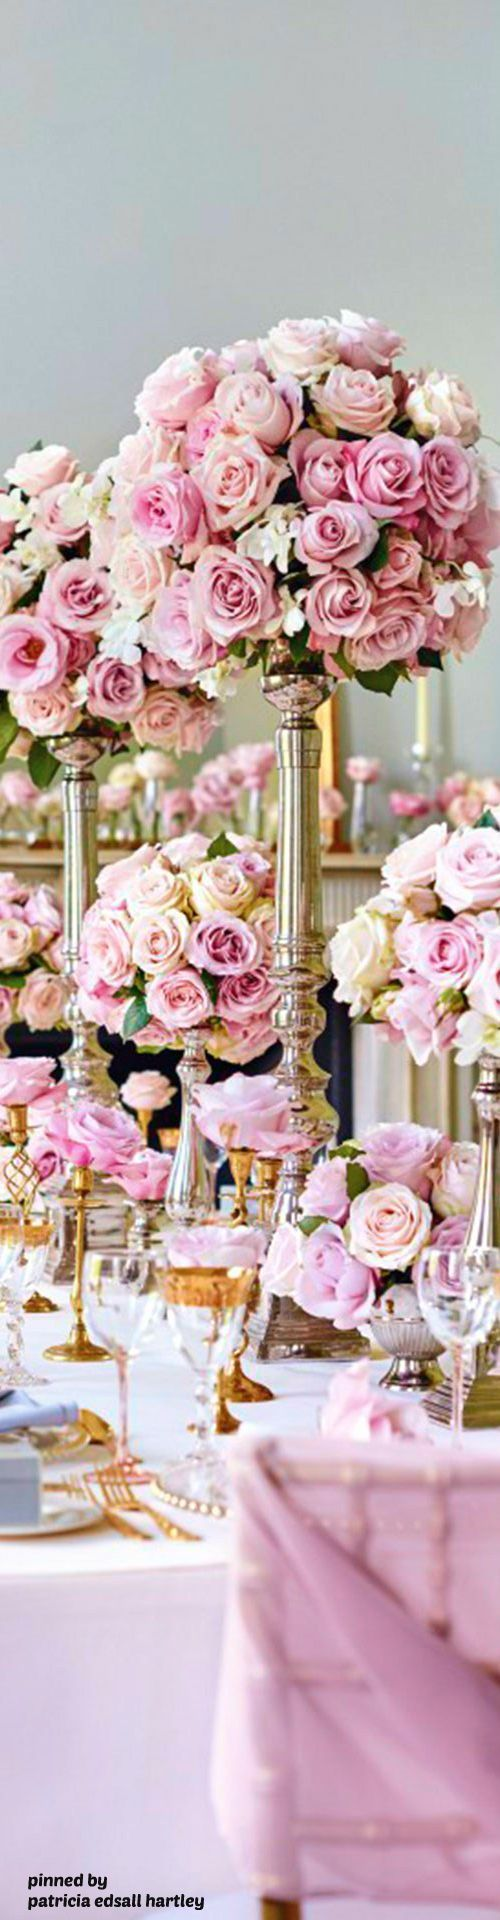 Pink wedding reception centerpieces | Wedding Decor Ideas ...